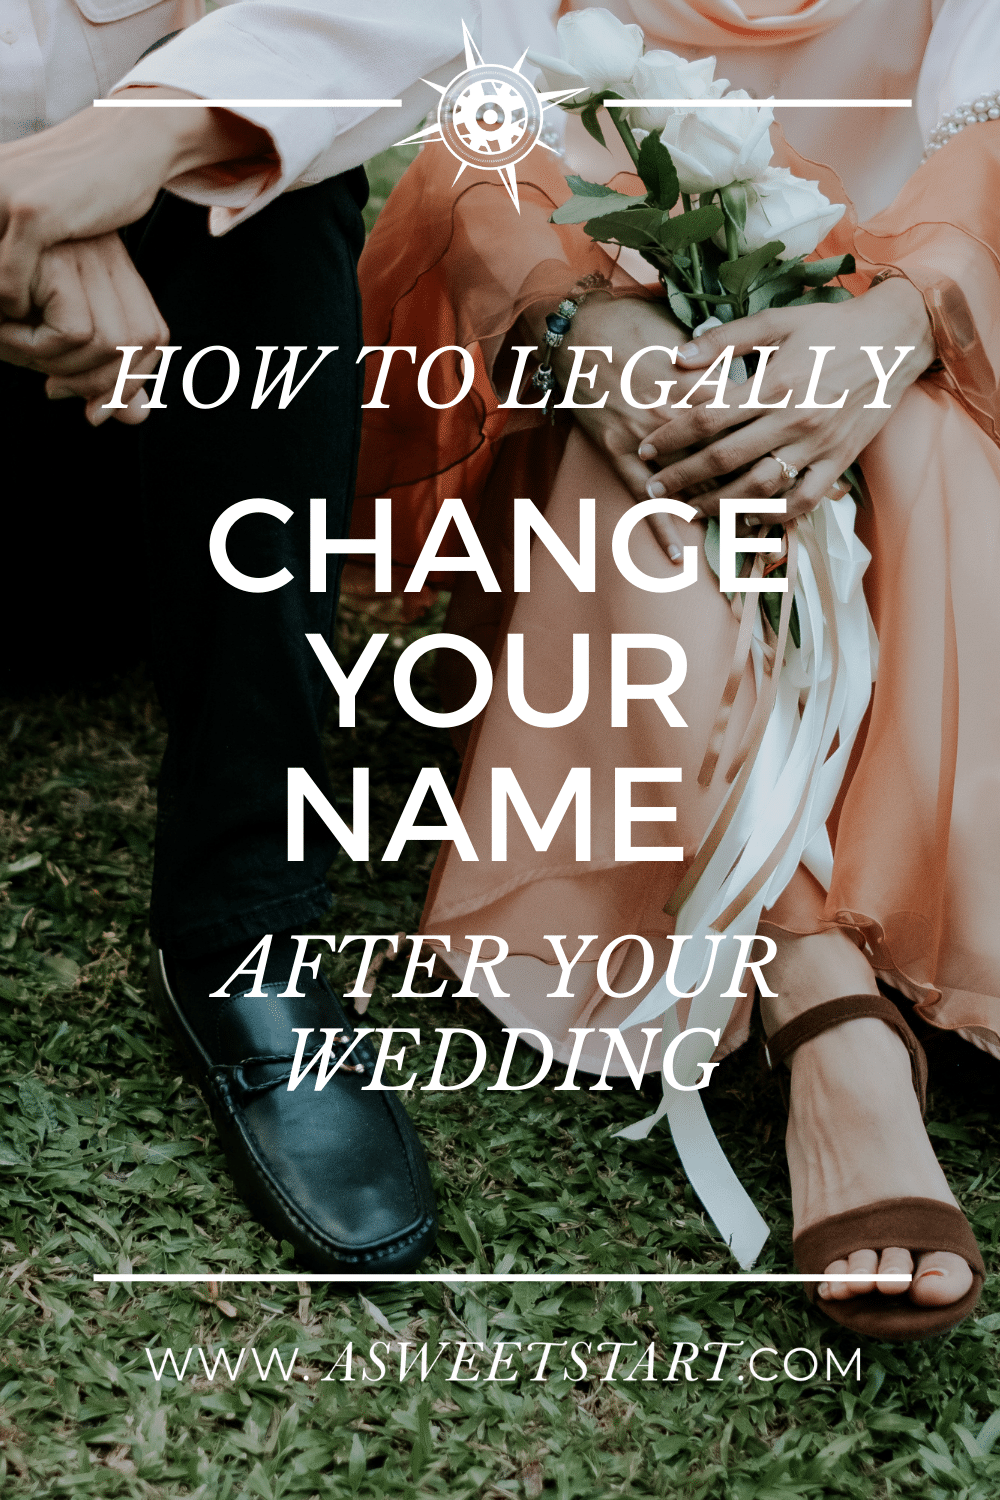 How to legally change your name after your wedding